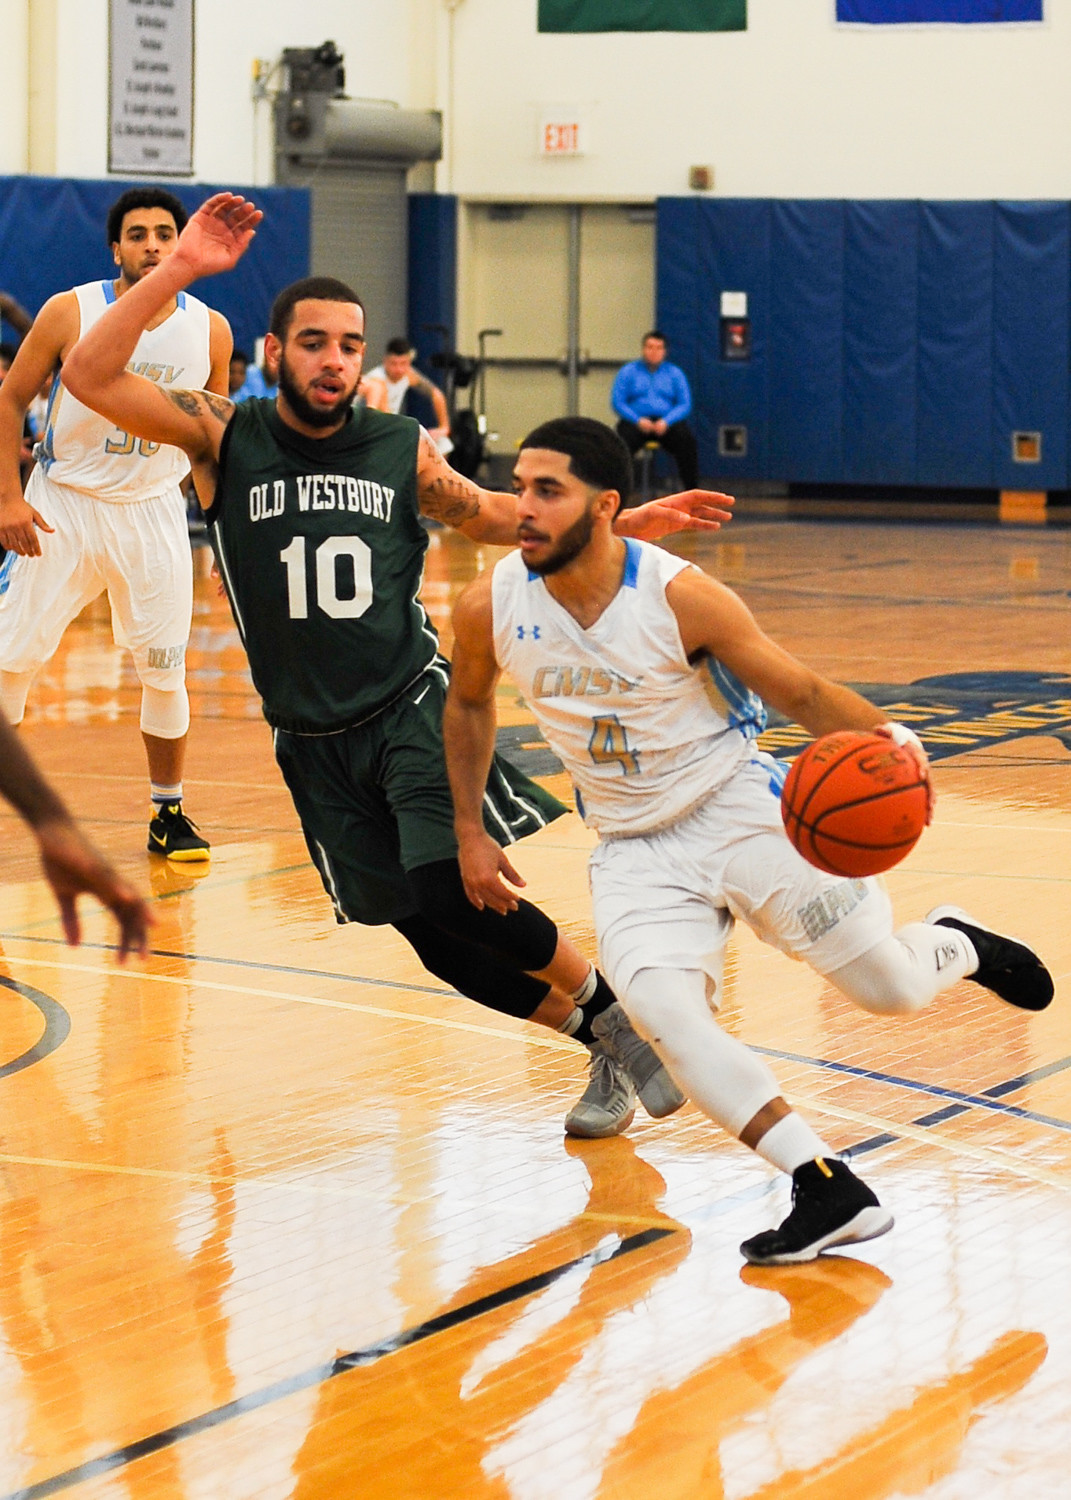 College of Mount Saint Vincent senior guard Jose Maestre works his way around Old Westbury's Preston Powell, but the Dolphins couldn't come up with a win on Senior Day.